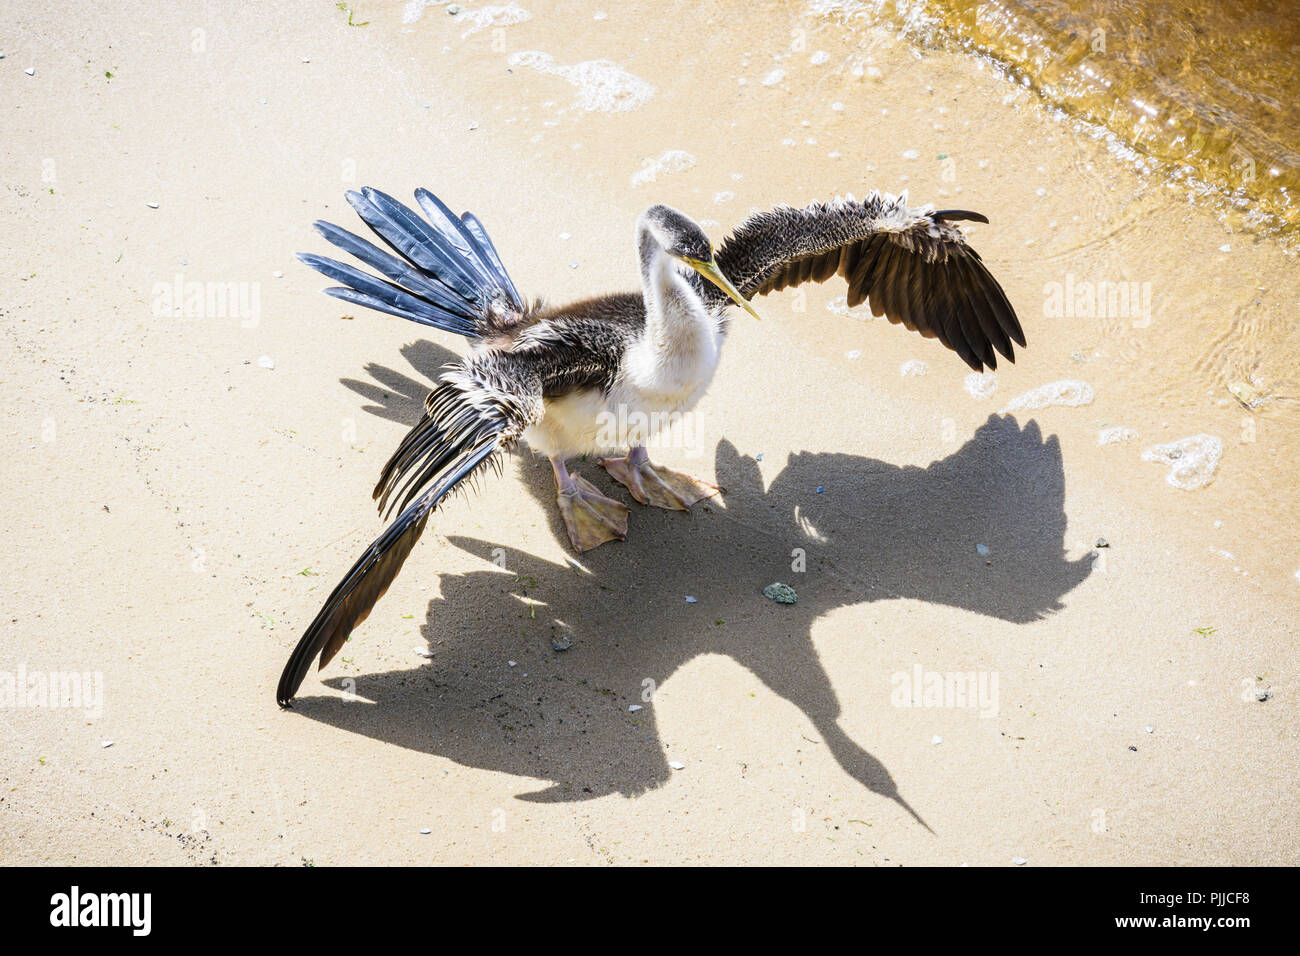 Australasian darter water bird drying its wings in the sun on the banks of the Swan River, Perth, Western Australia - Stock Image